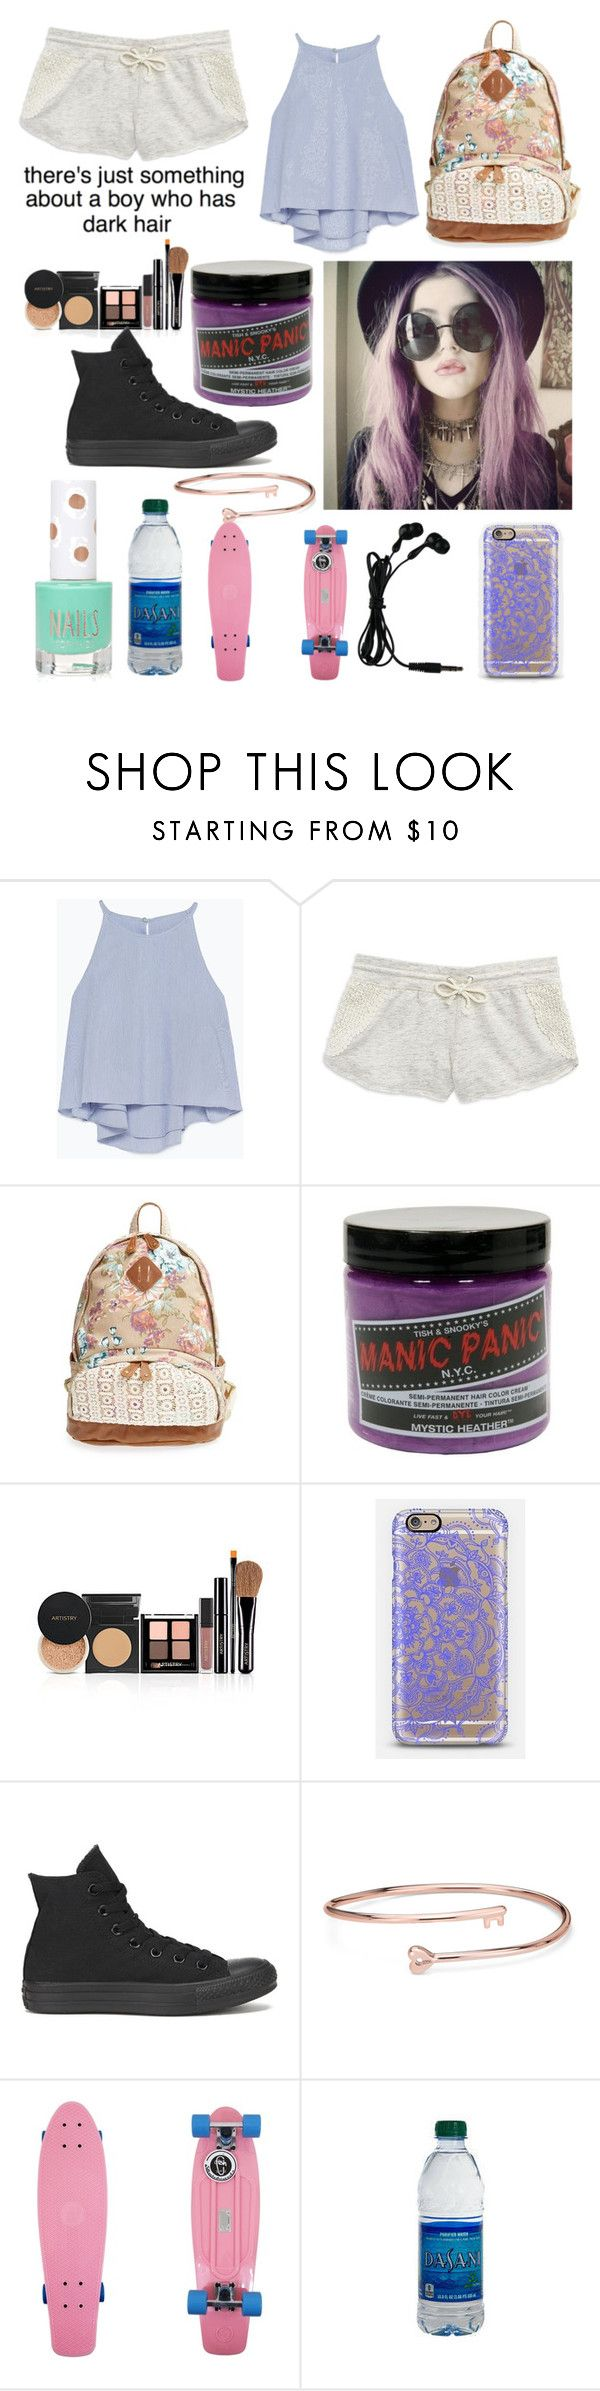 """""""Random set"""" by madelynnlove ❤ liked on Polyvore featuring Zara, Kensie, Nila Anthony, Manic Panic NYC, Casetify, Converse, Blue Nile and Topshop"""